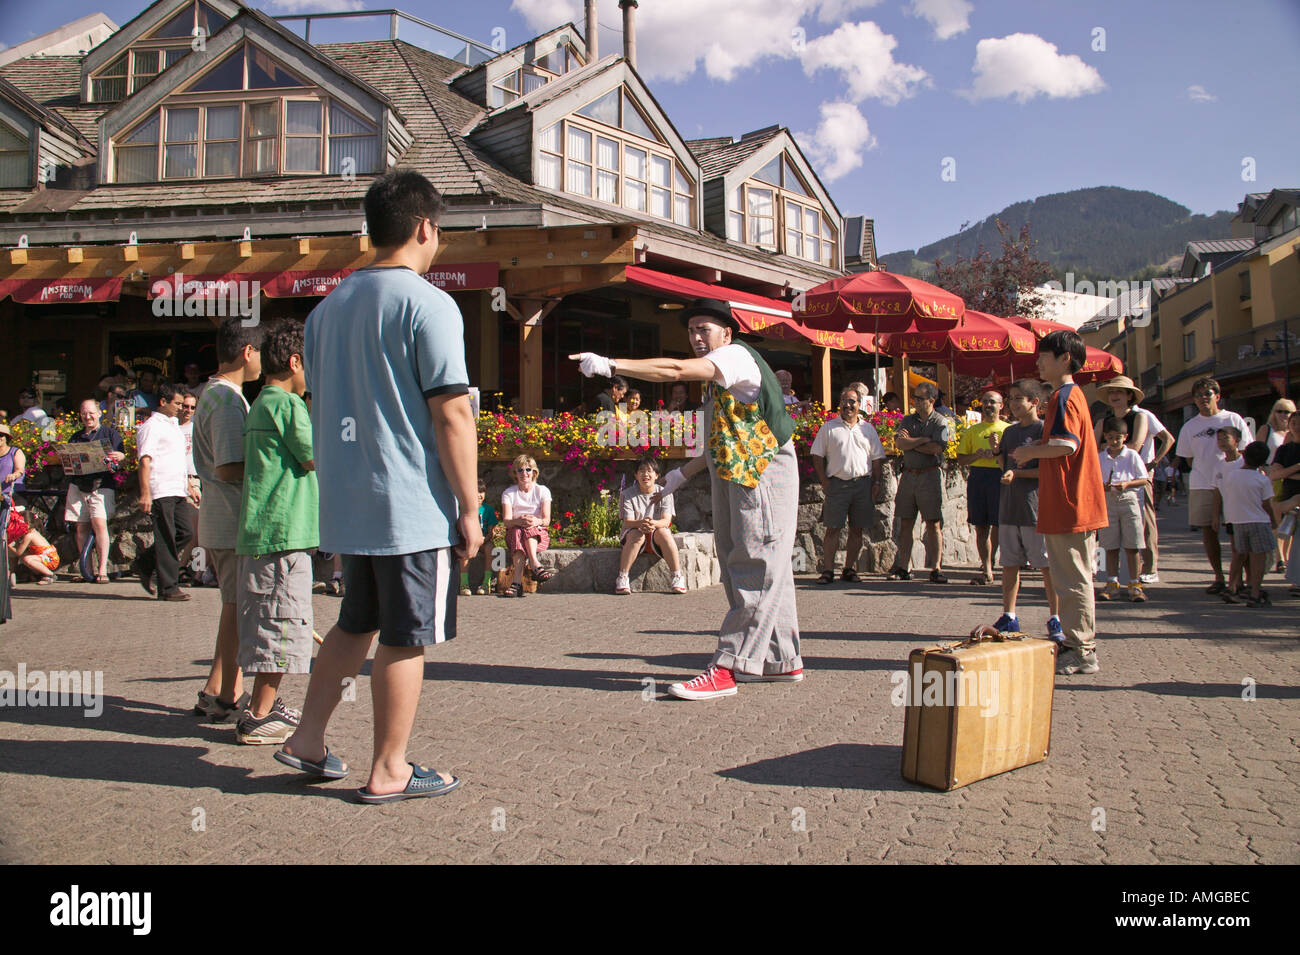 Mime entertains tourists on the Village Square at Whistler Village Whistler British Columbia Canada - Stock Image